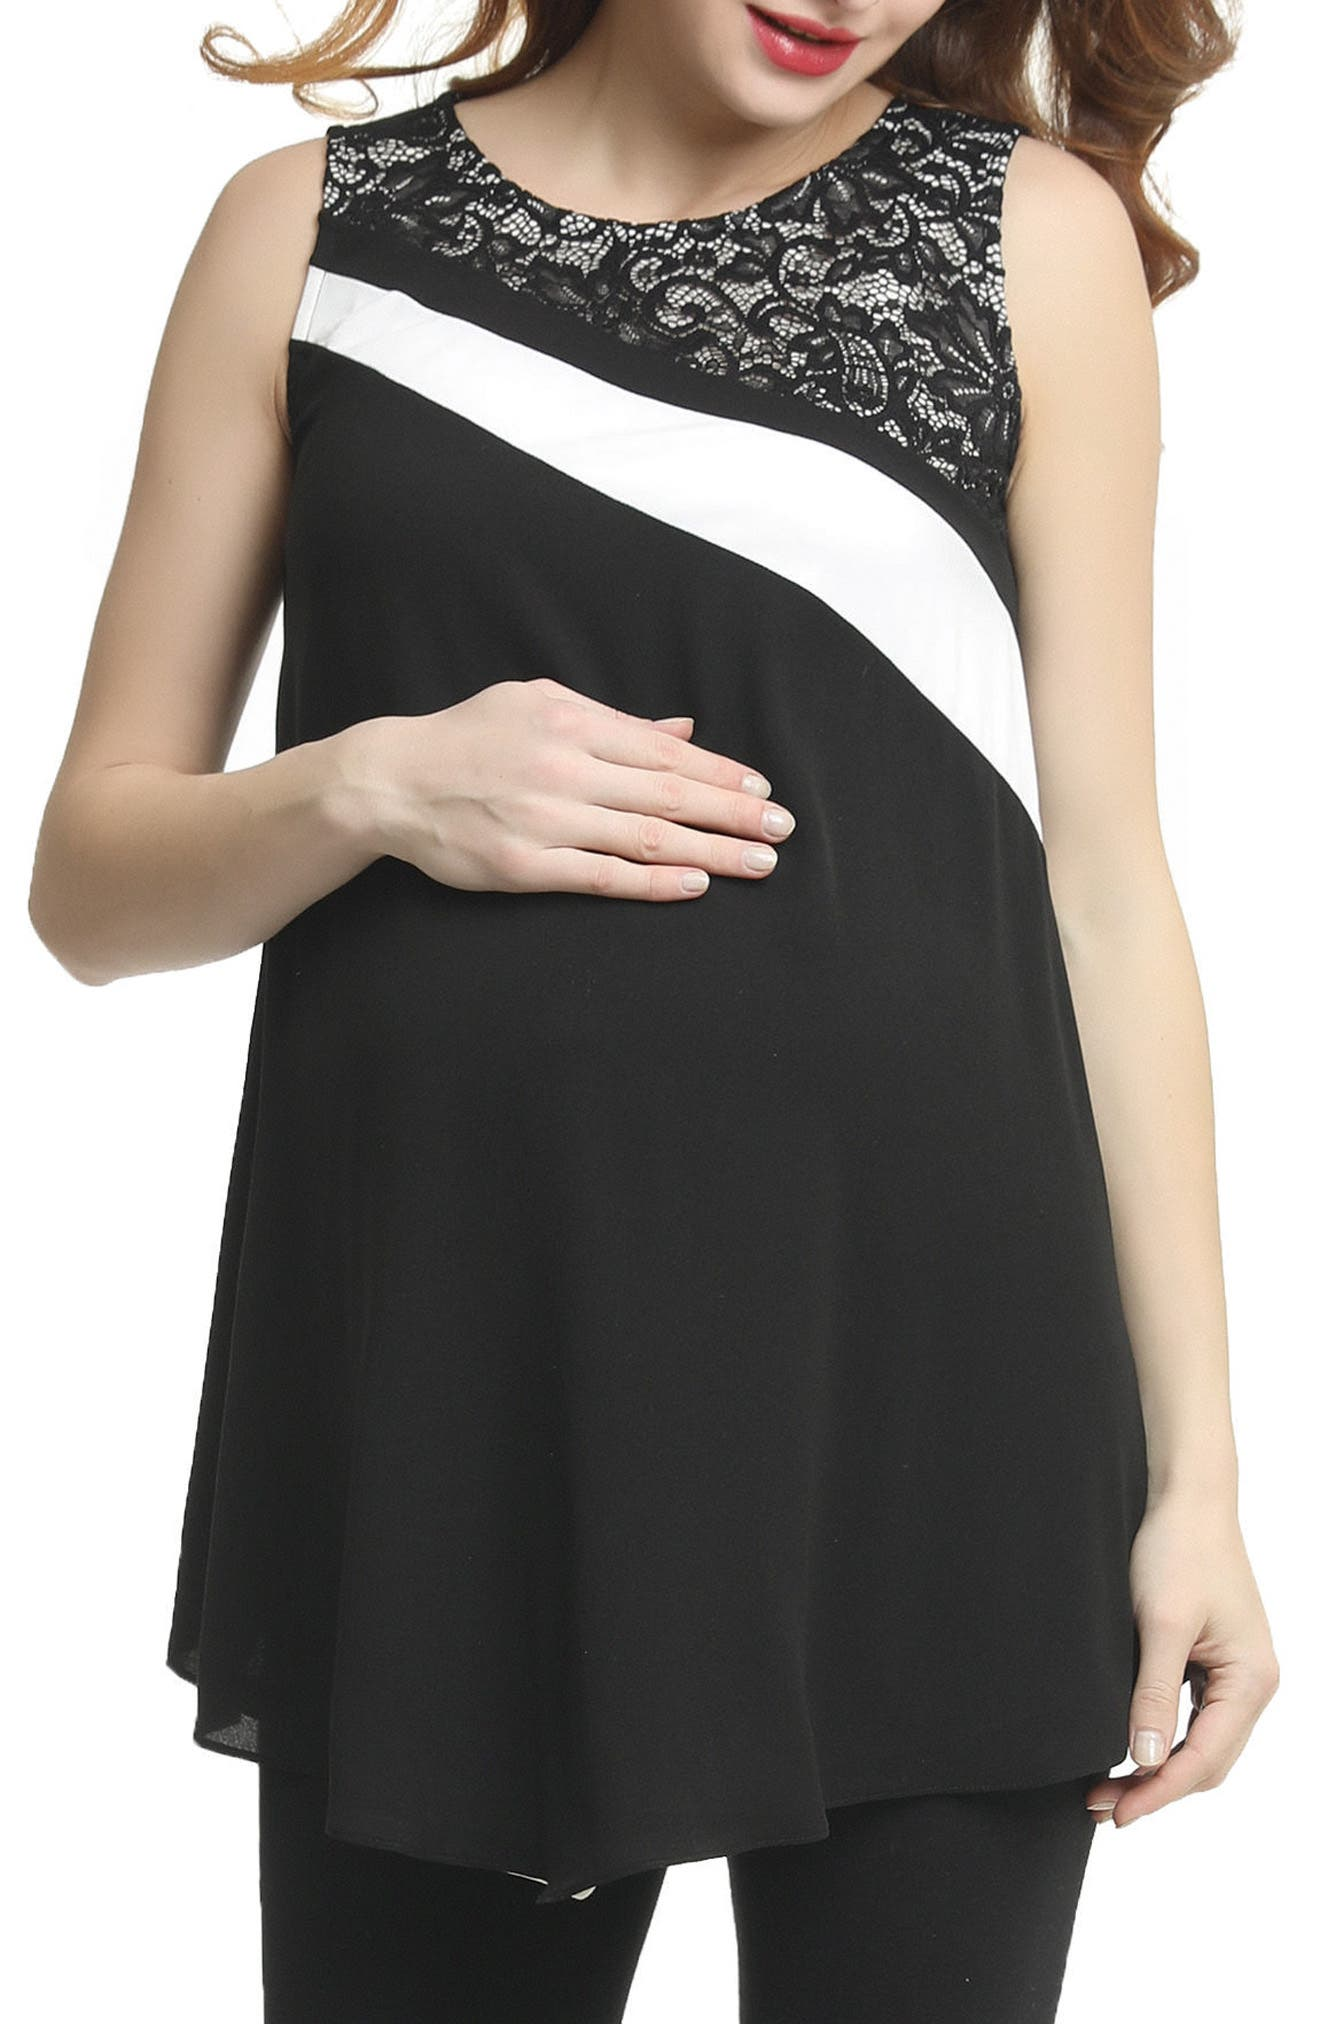 Bonnie Lace Accent Belted Maternity Top,                         Main,                         color, Black/ White